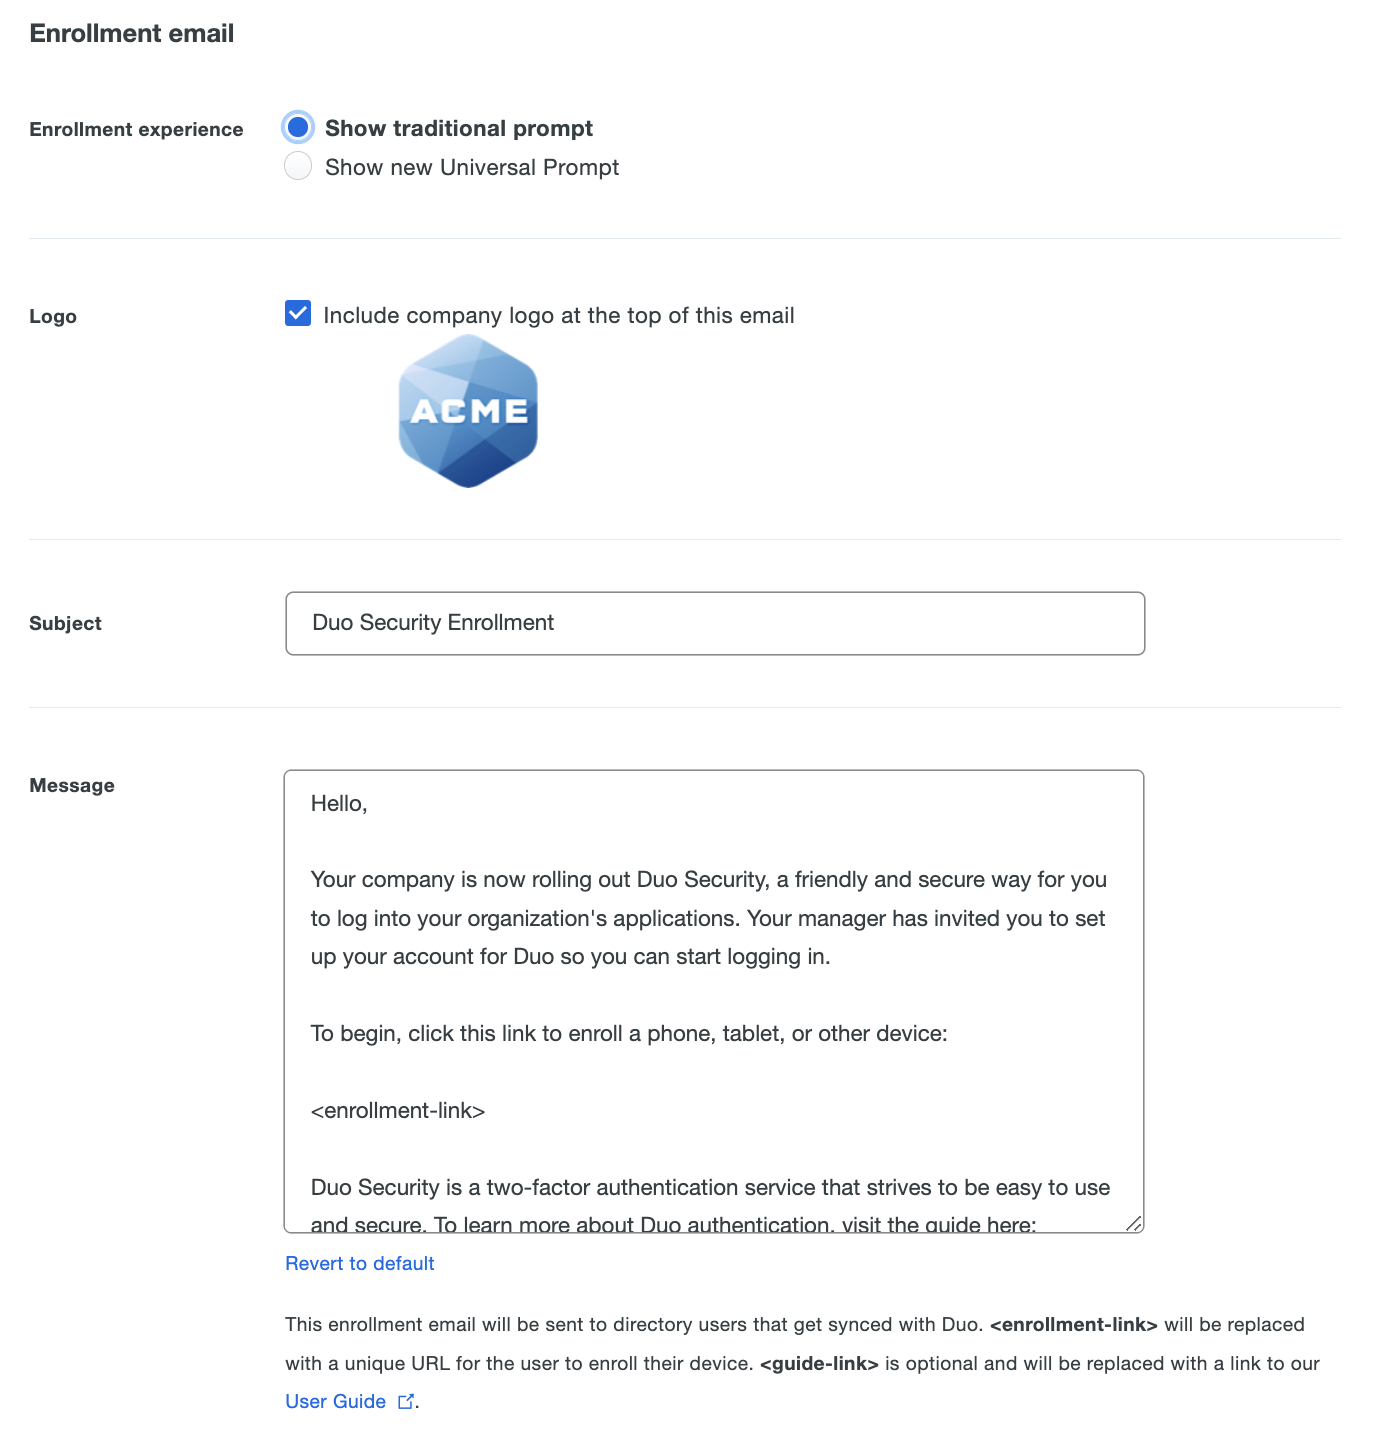 Enrollment email settings